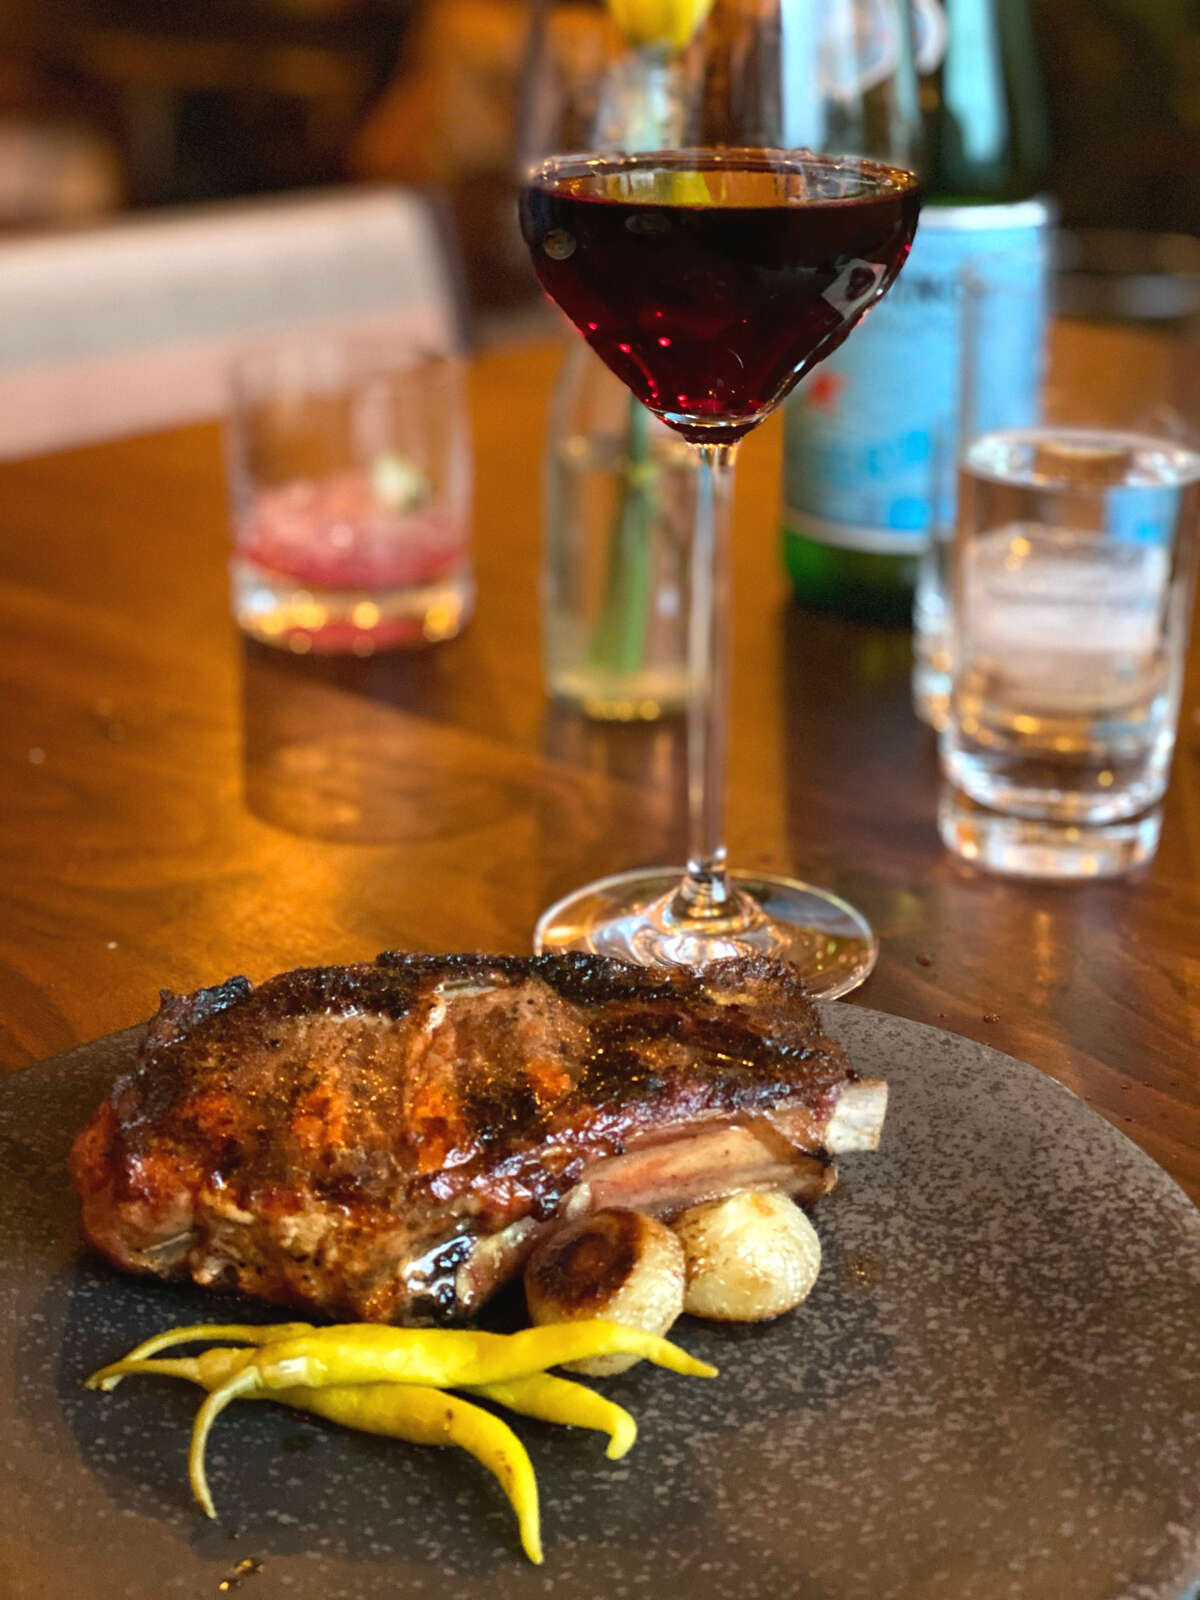 Roasted cipollini onions and pickled peppers accompany a $27 wood-grilled pork chop at Feast & Floret in Hudson. (Susie Davidson Powell/For the Times Union.)